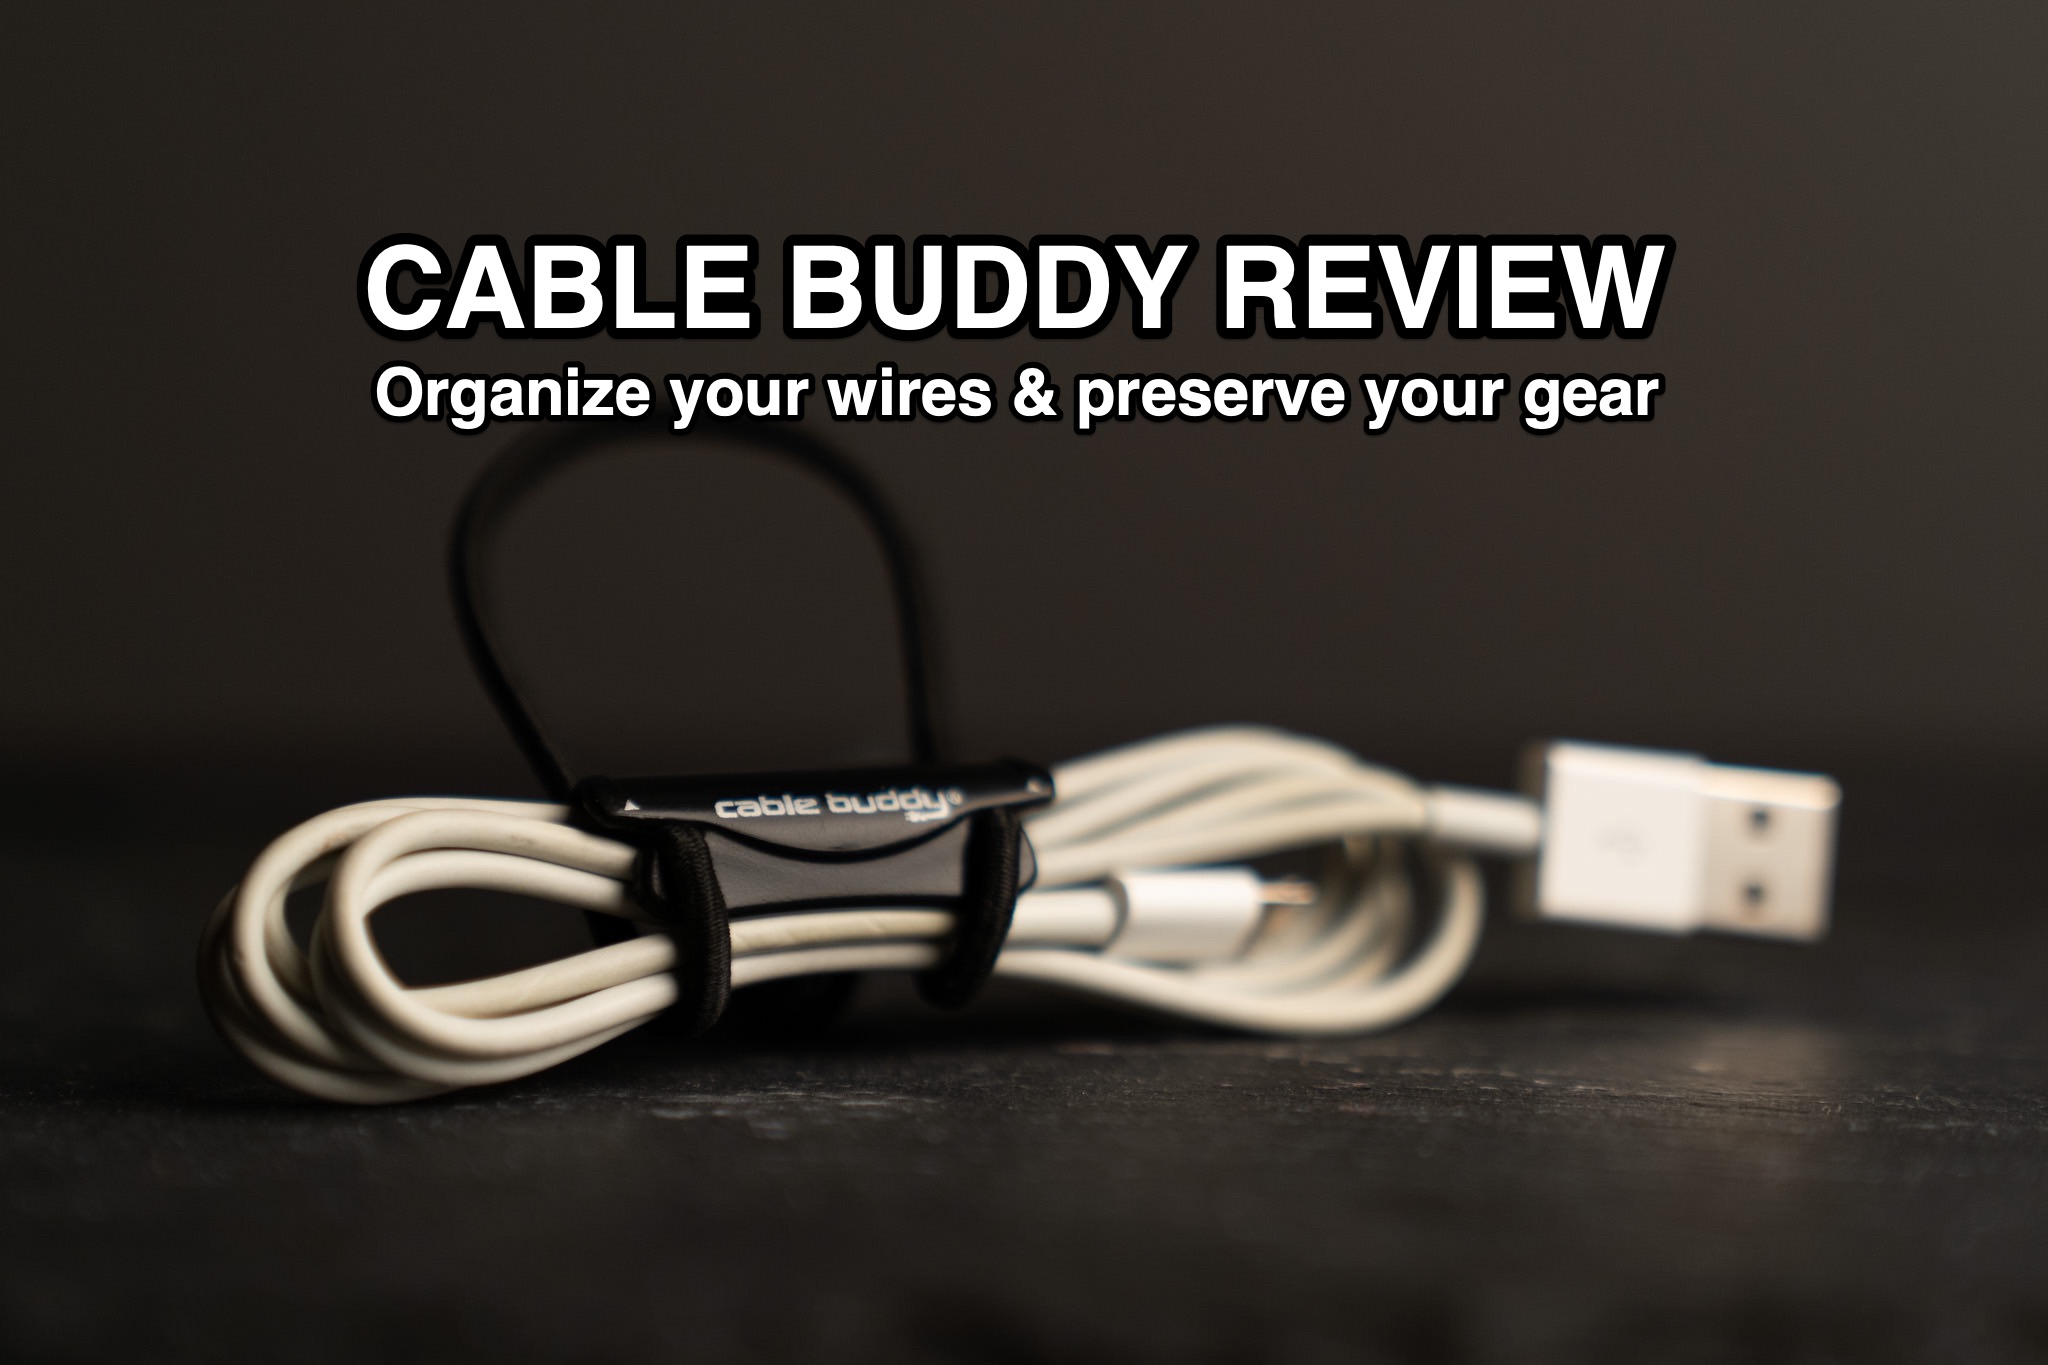 CABLE BUDDY REVIEW